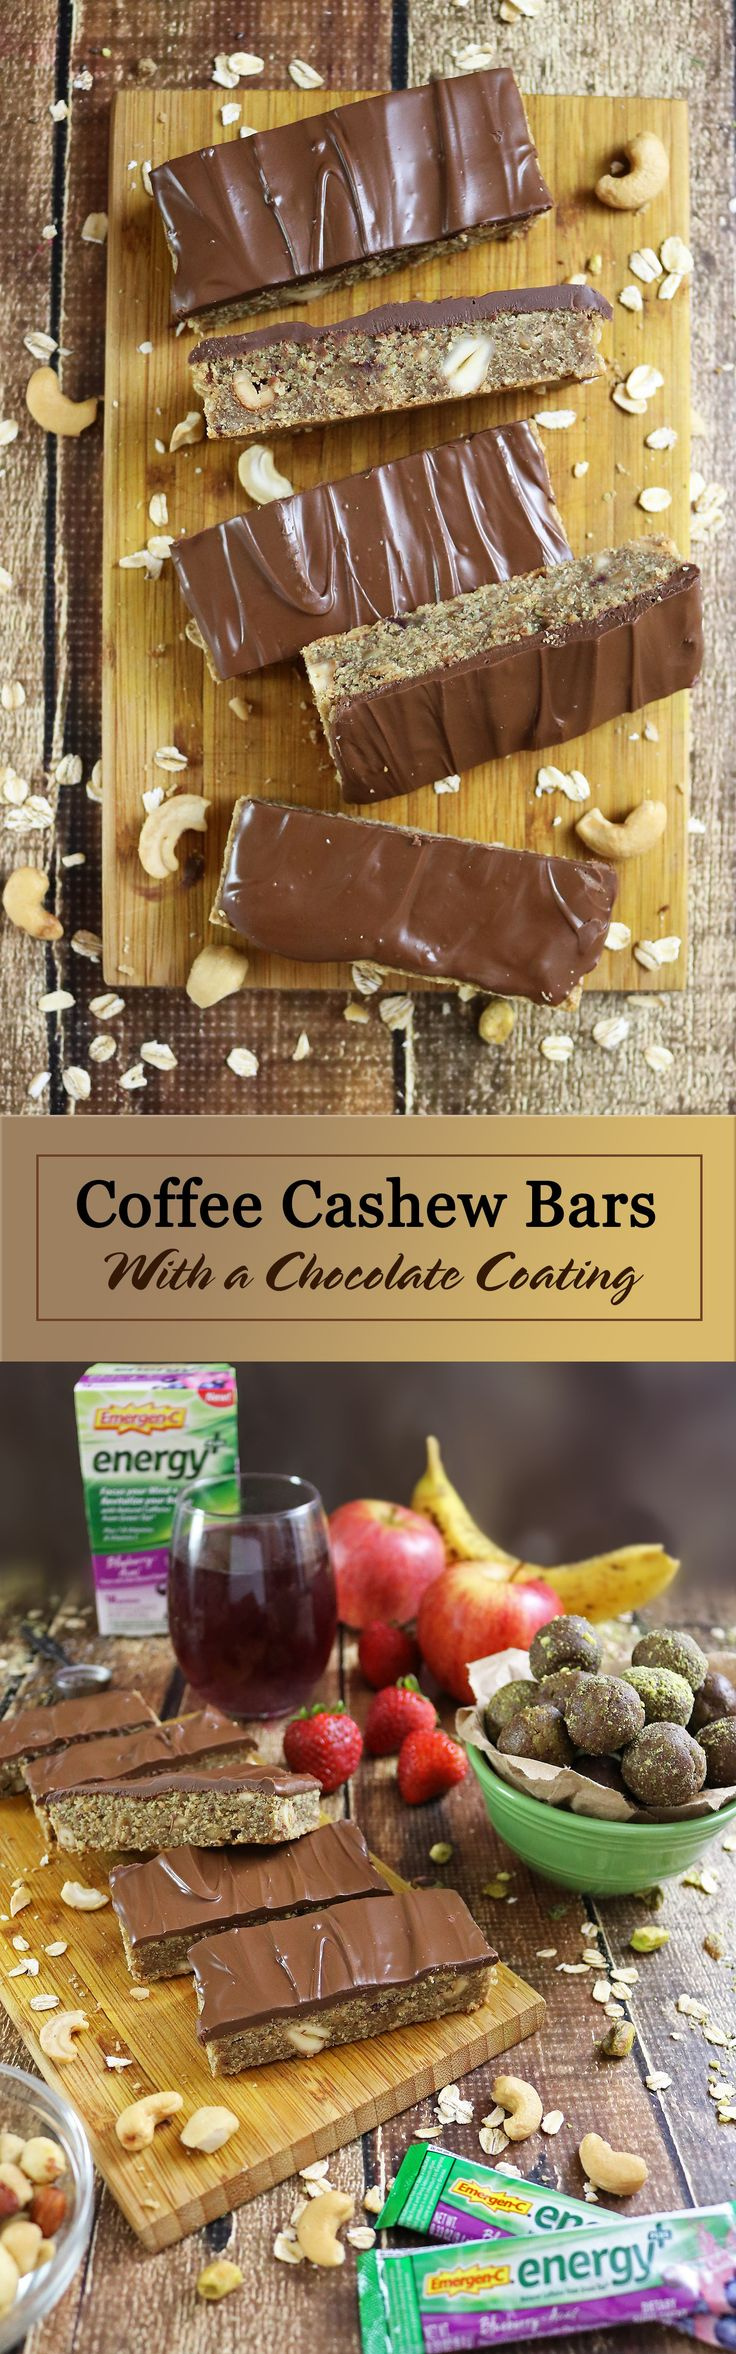 Coffee Cashew Bars With a chocolate coating and Emergen-C Energy+